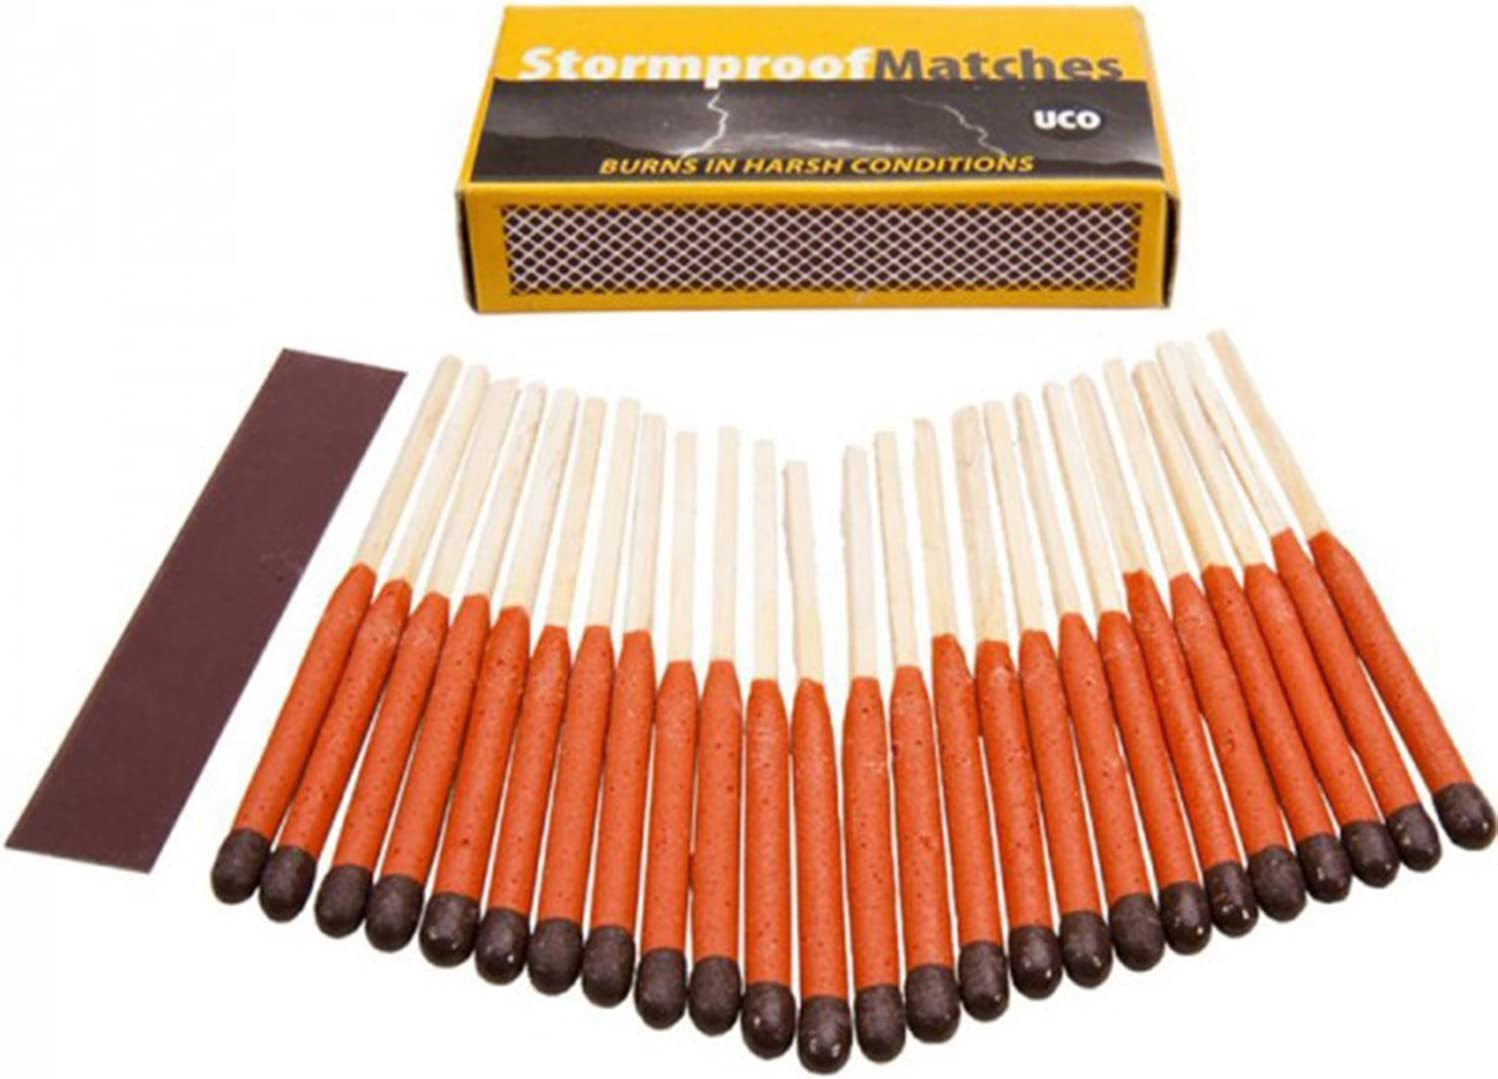 2 NEW UCO Stormproof Matches 25-Pack Windproof Waterproof 2 PACKS